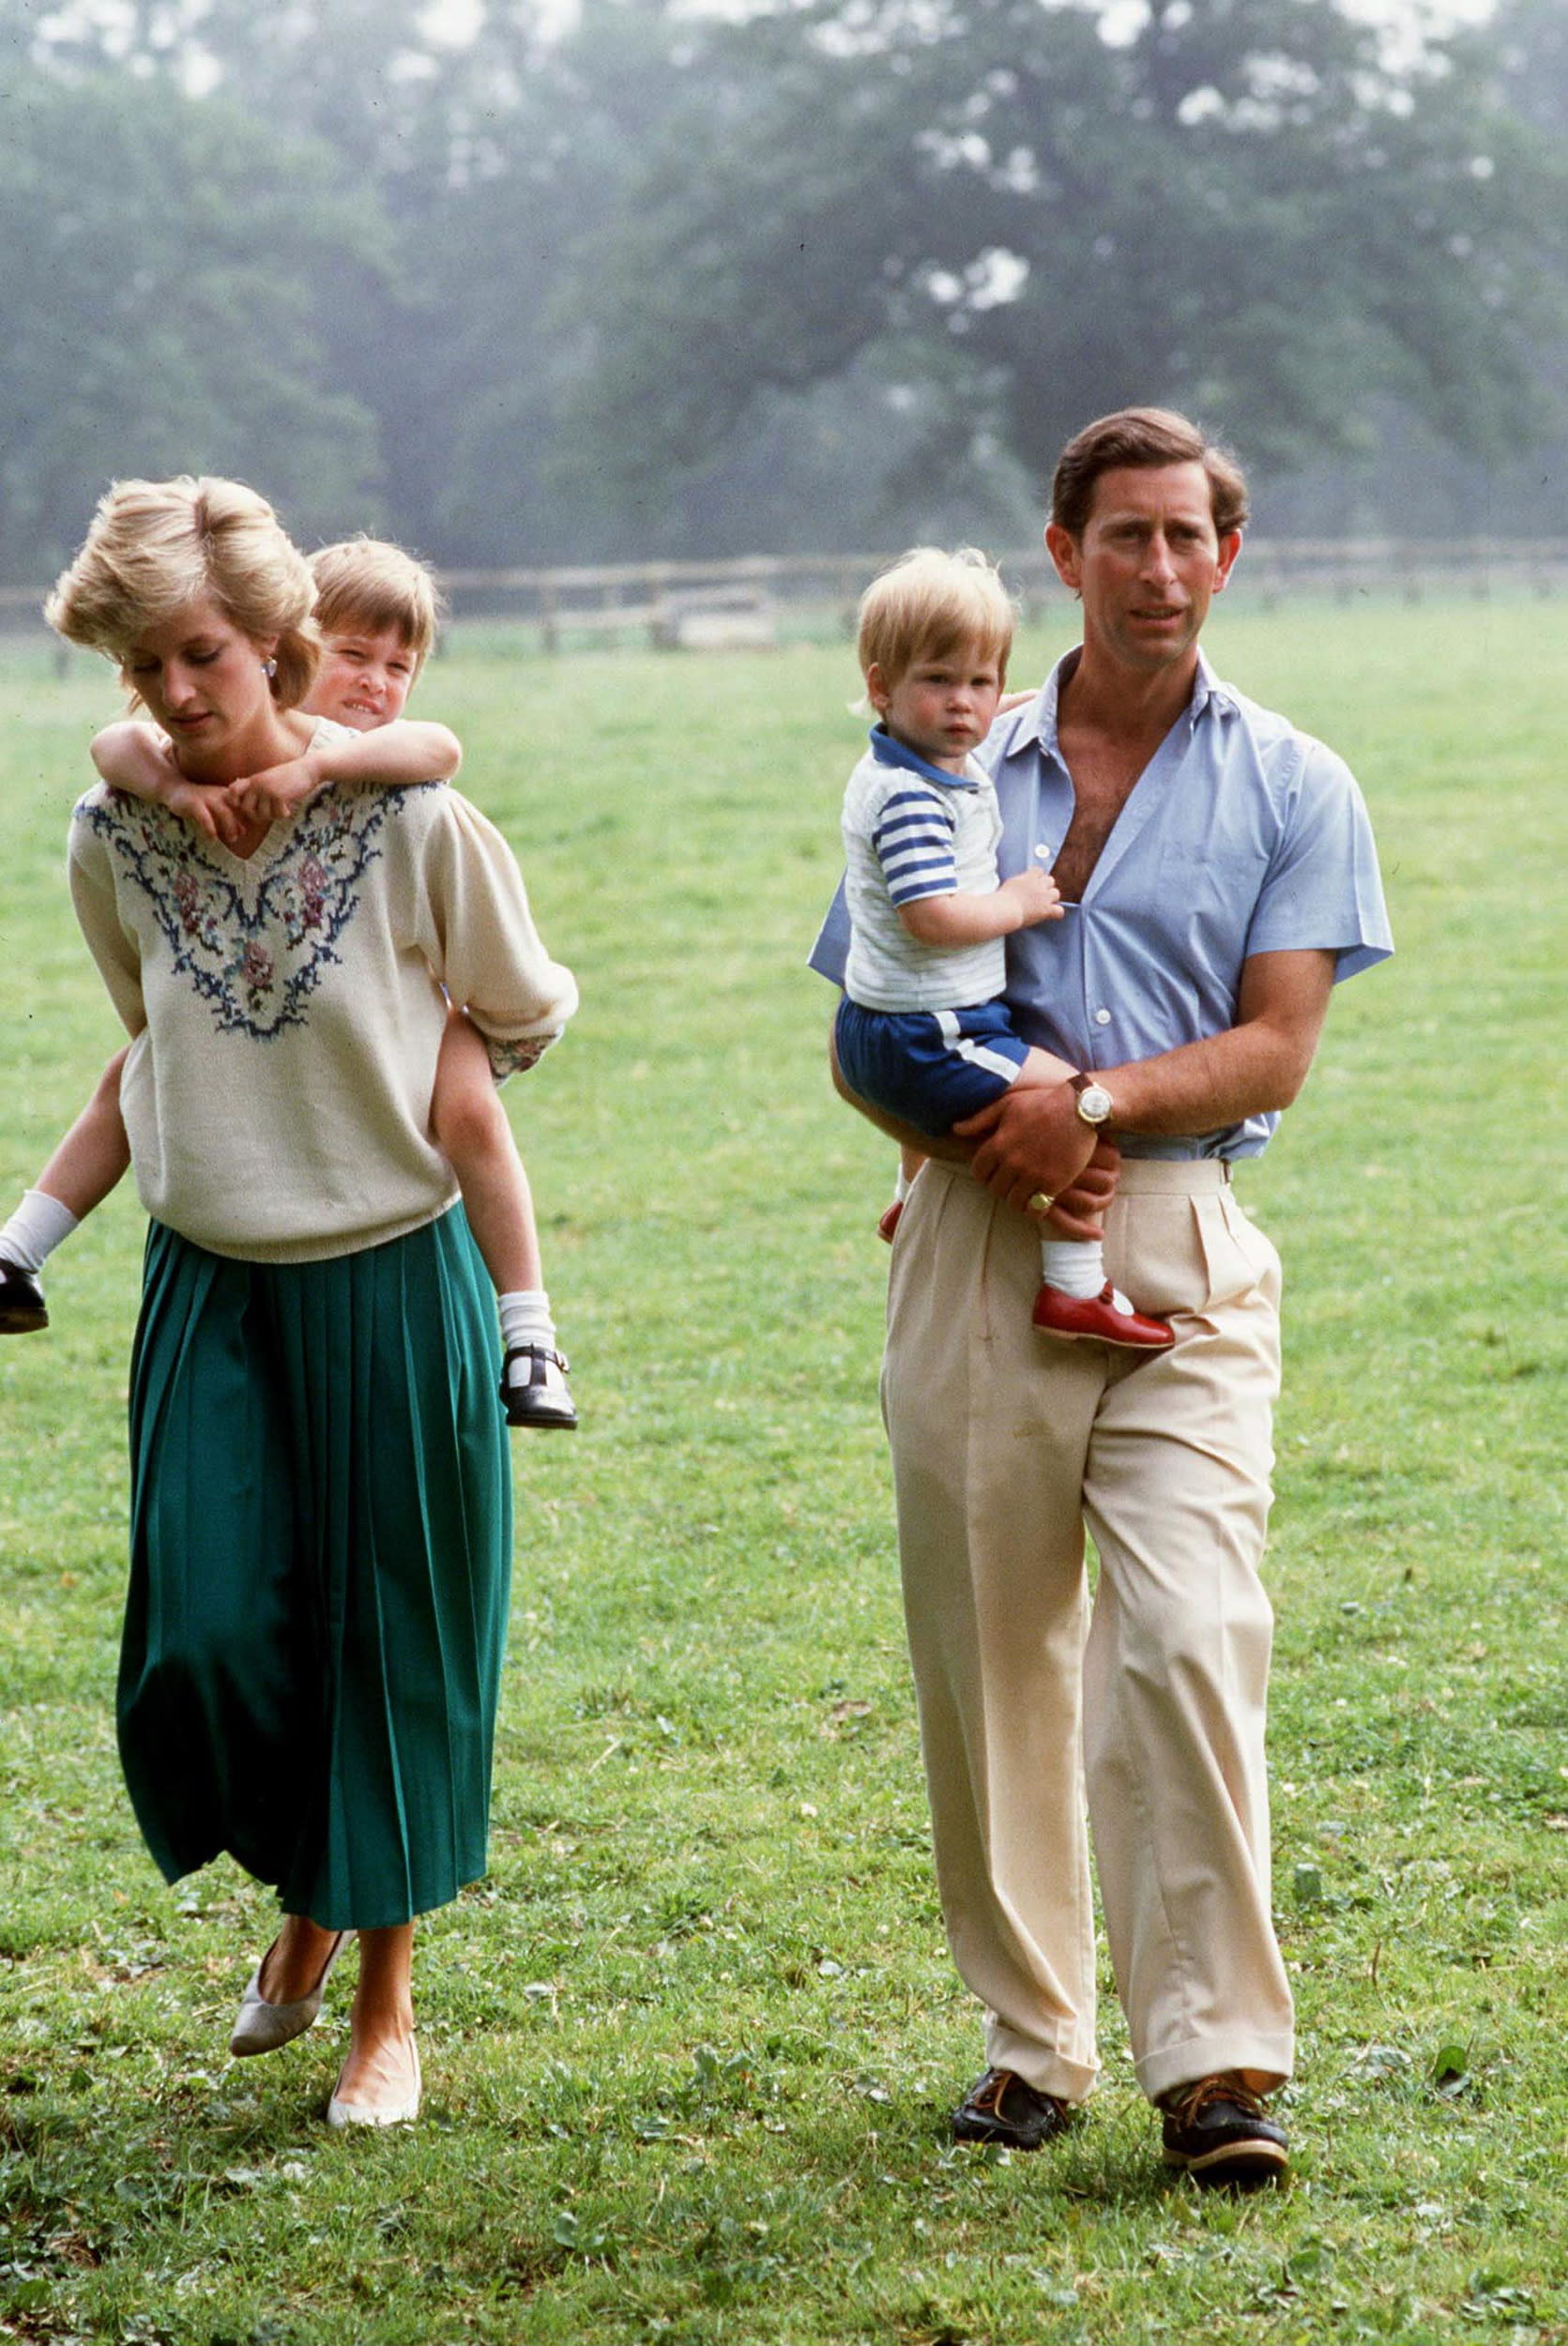 TETBURY, UNITED KINGDOM - JULY 14:  Prince Charles And Princess Diana With Prince William And Prince Harry At Home In The Gardens Of Highgrove House  (Photo by Tim Graham/Getty Images)